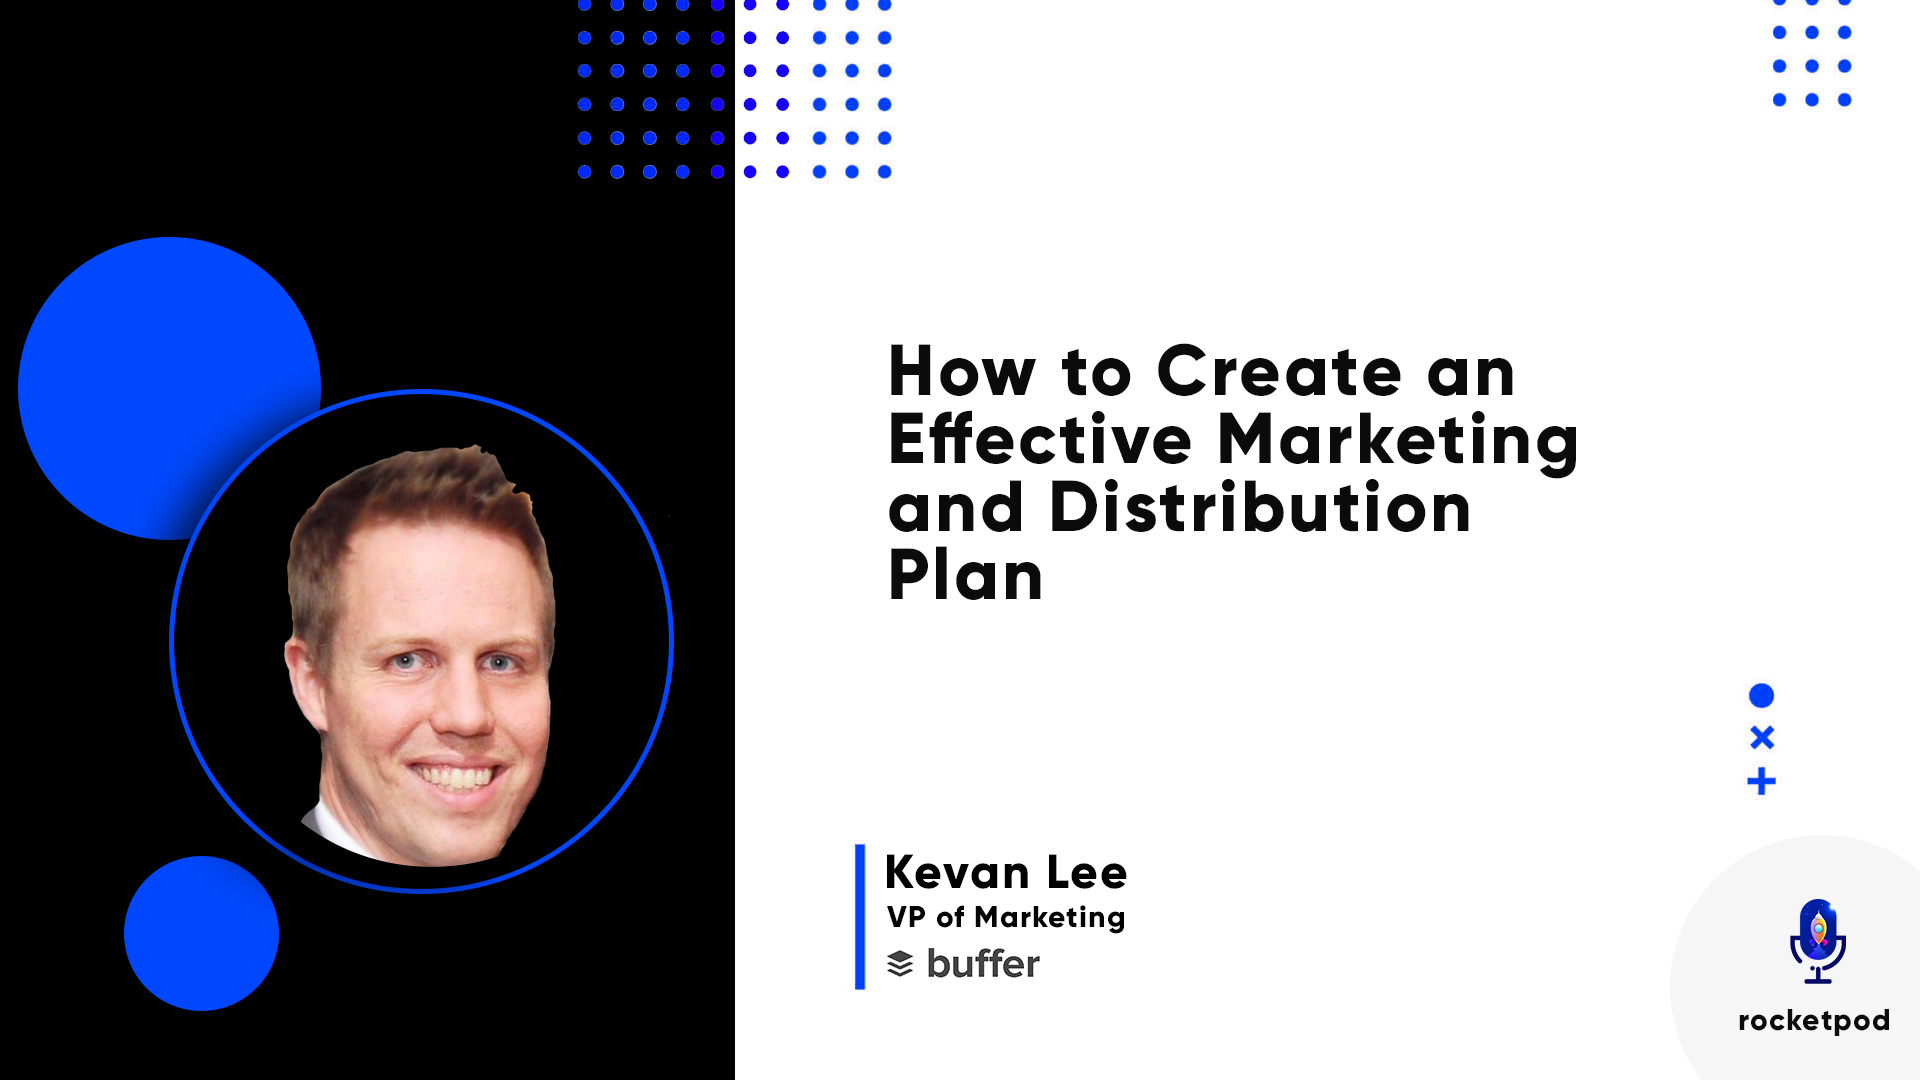 How to make an effective content marketing and distribution plan